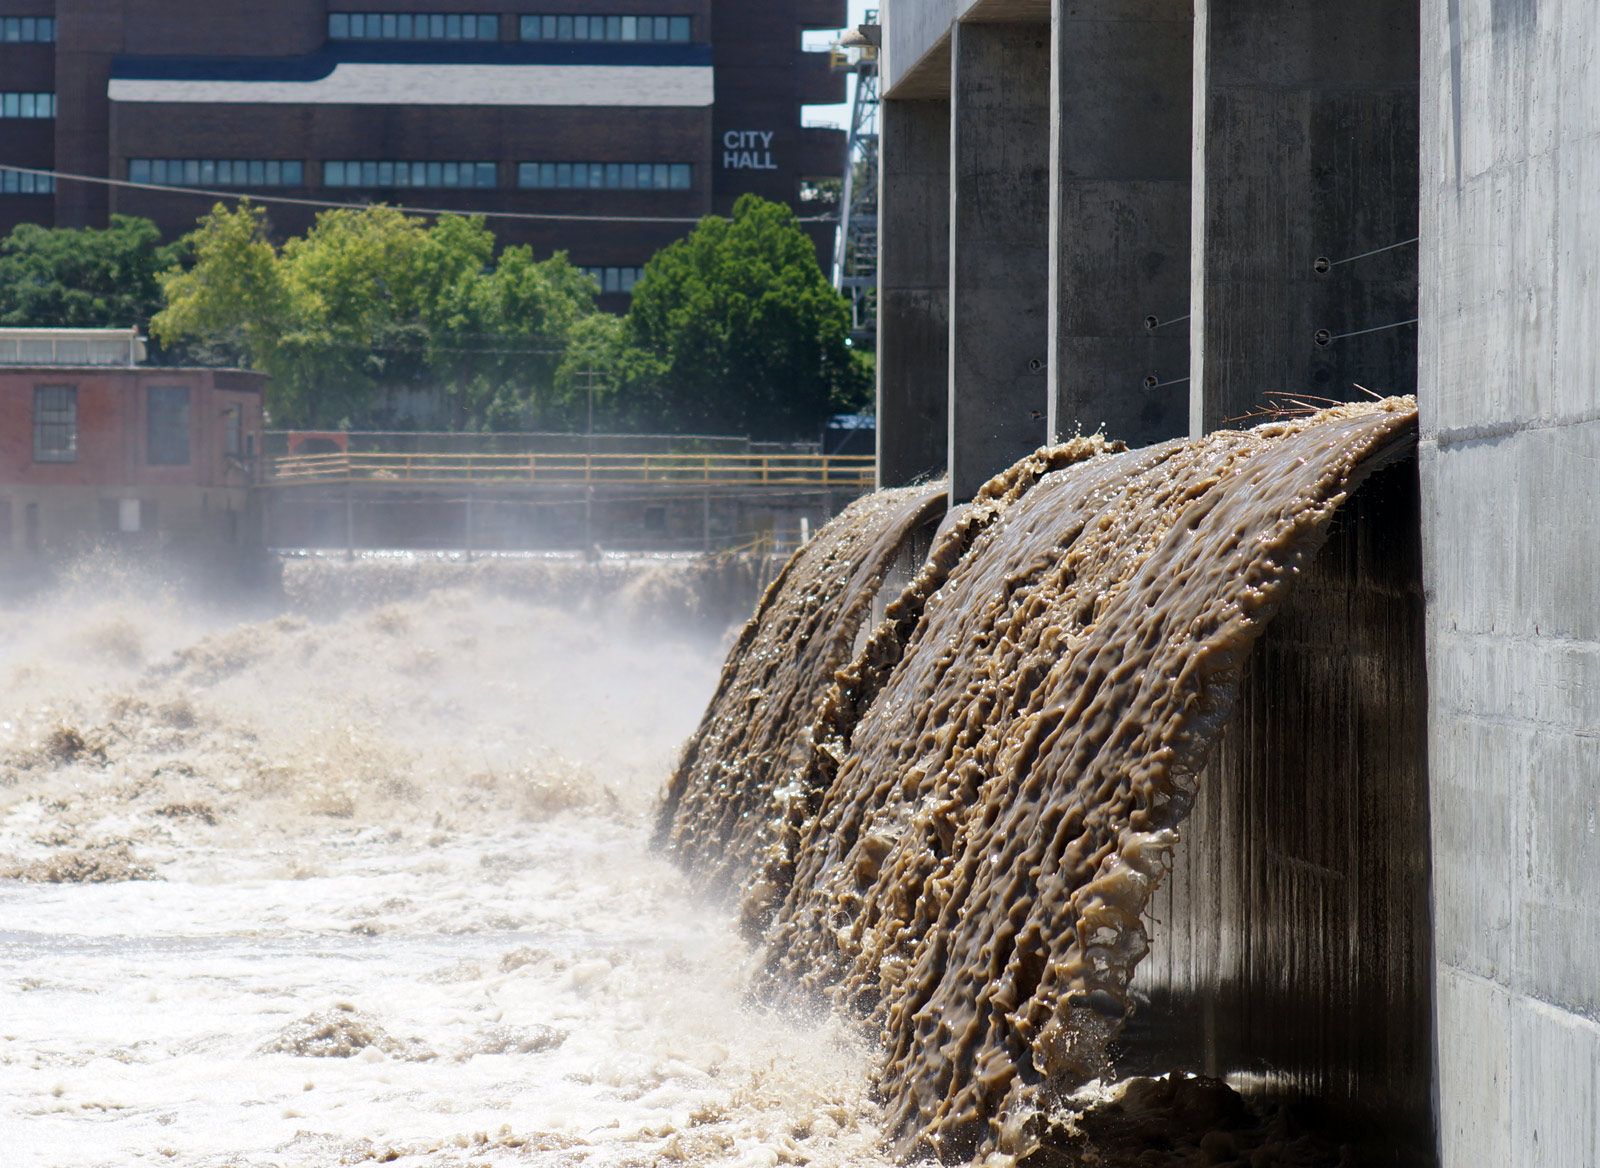 The hydro-electric power plant in Lawrence is overflowing. Photo credit: Danny Mantyla.